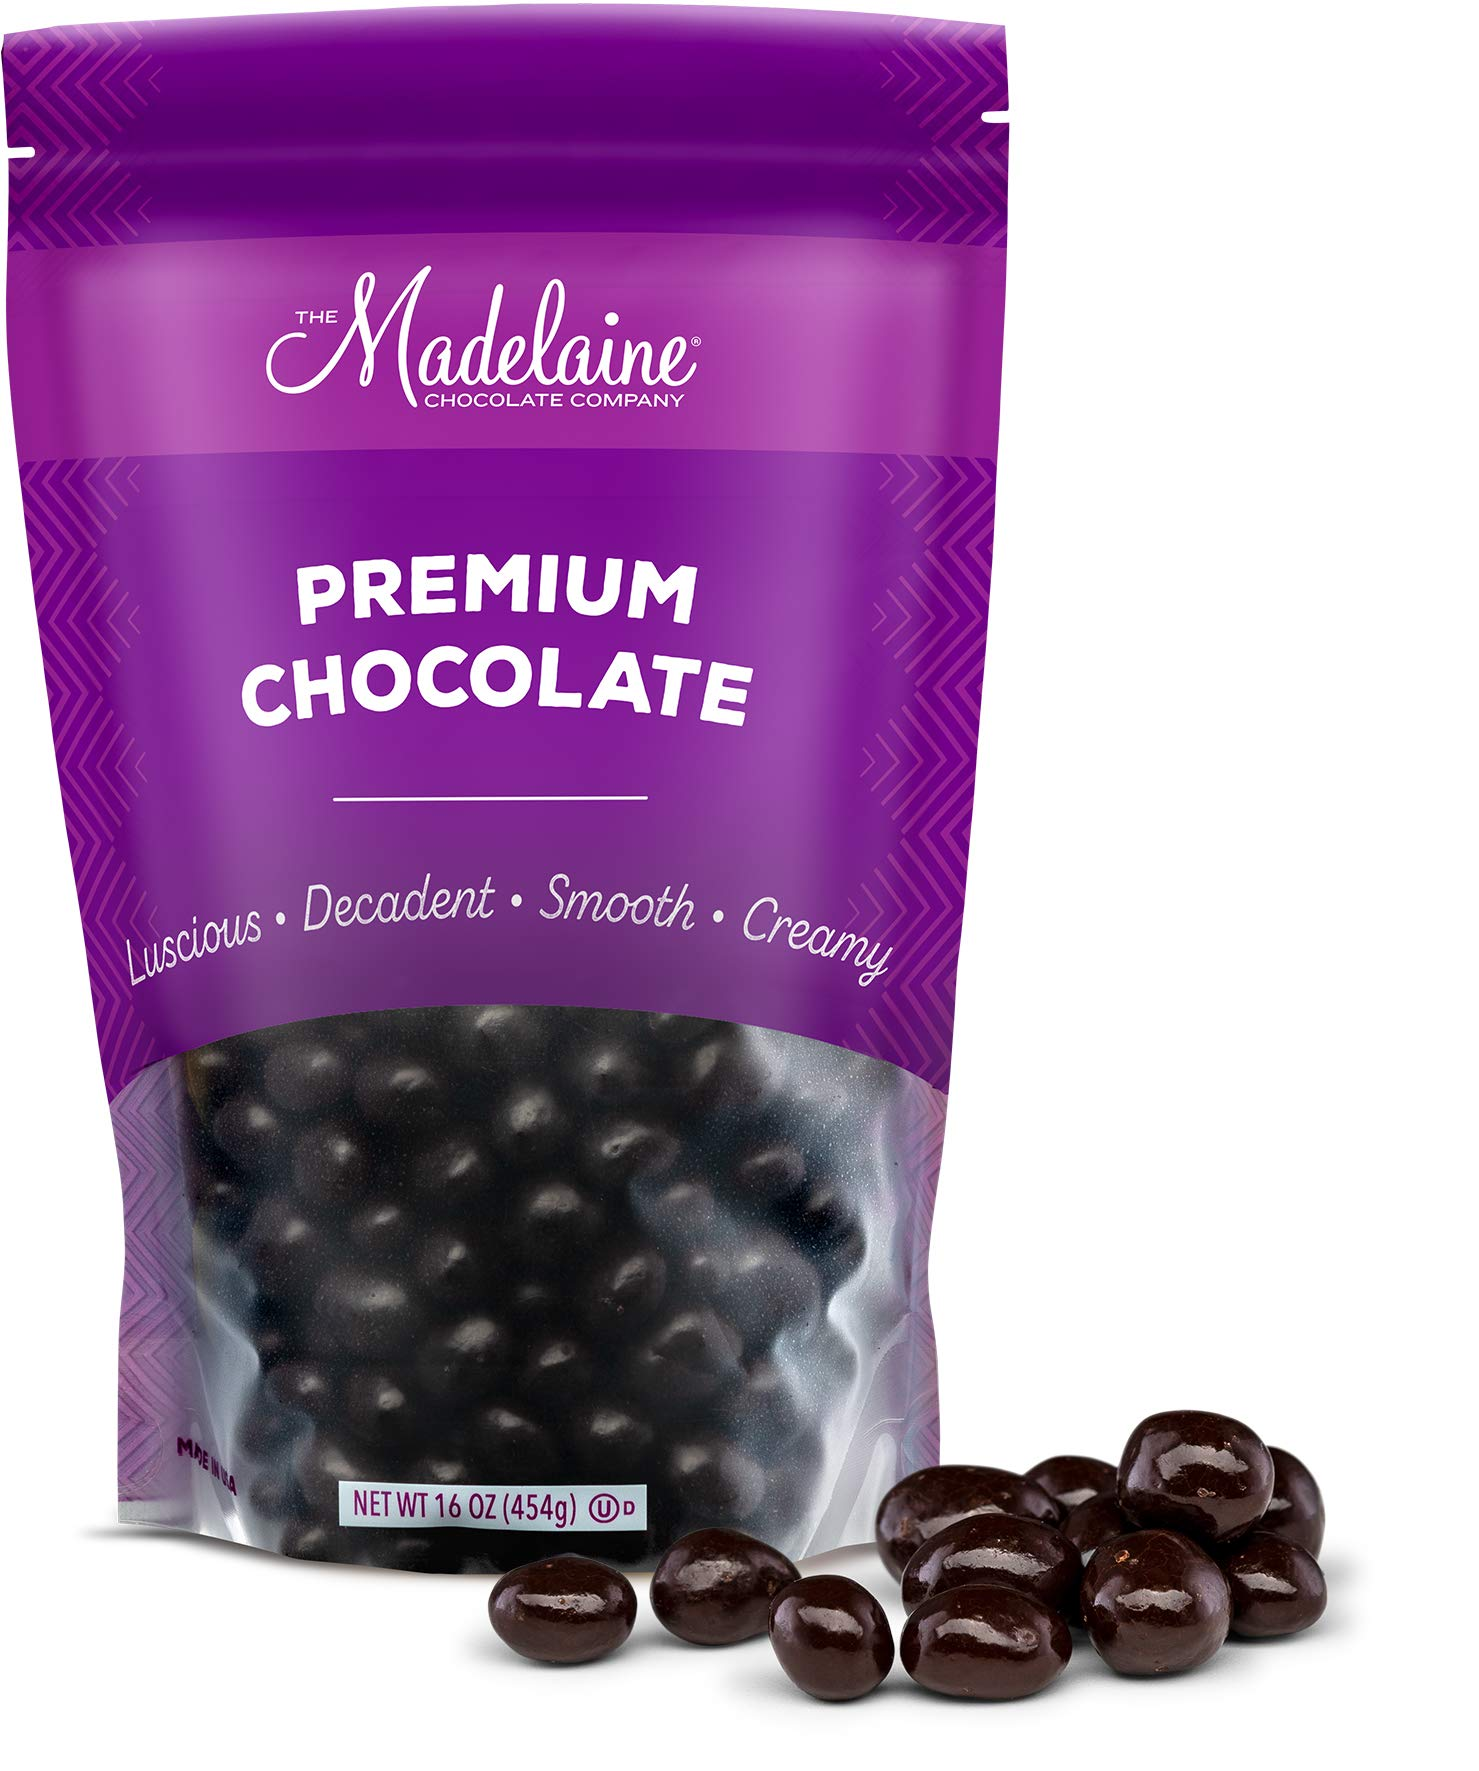 Premium Dark Chocolate Covered Espresso Coffee Beans - Bitter, Sweet, Smooth, Crunchy and Decadent. Gourmet Roasted Espresso Coffee Bean Center Covered In Premium Dark Chocolate (1 LB) by THE MADELAINE CHOCOLATE COMPANY